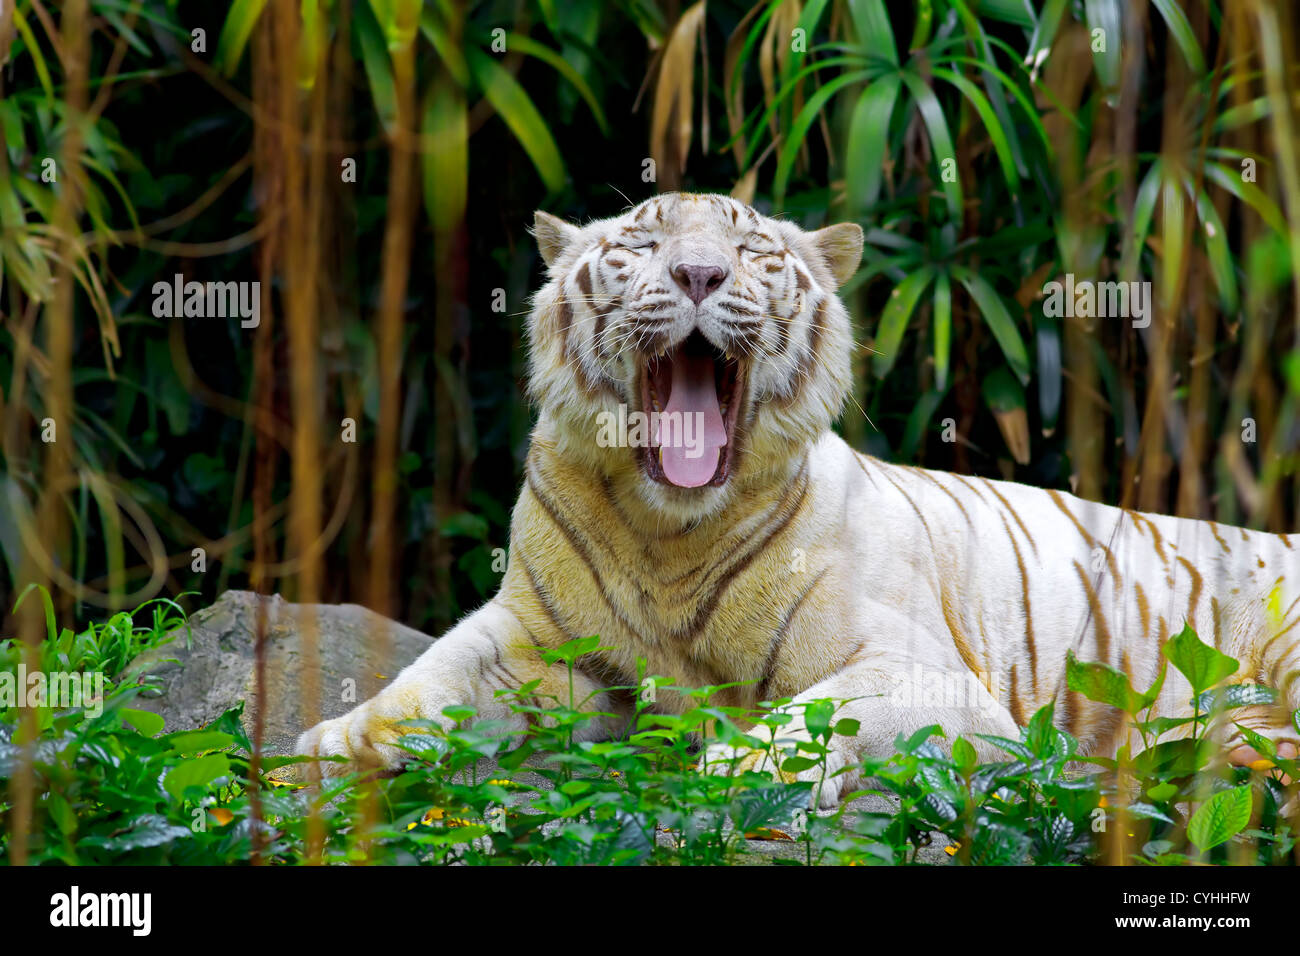 white tiger roaring in a tropical forest stock photo: 51403405 - alamy